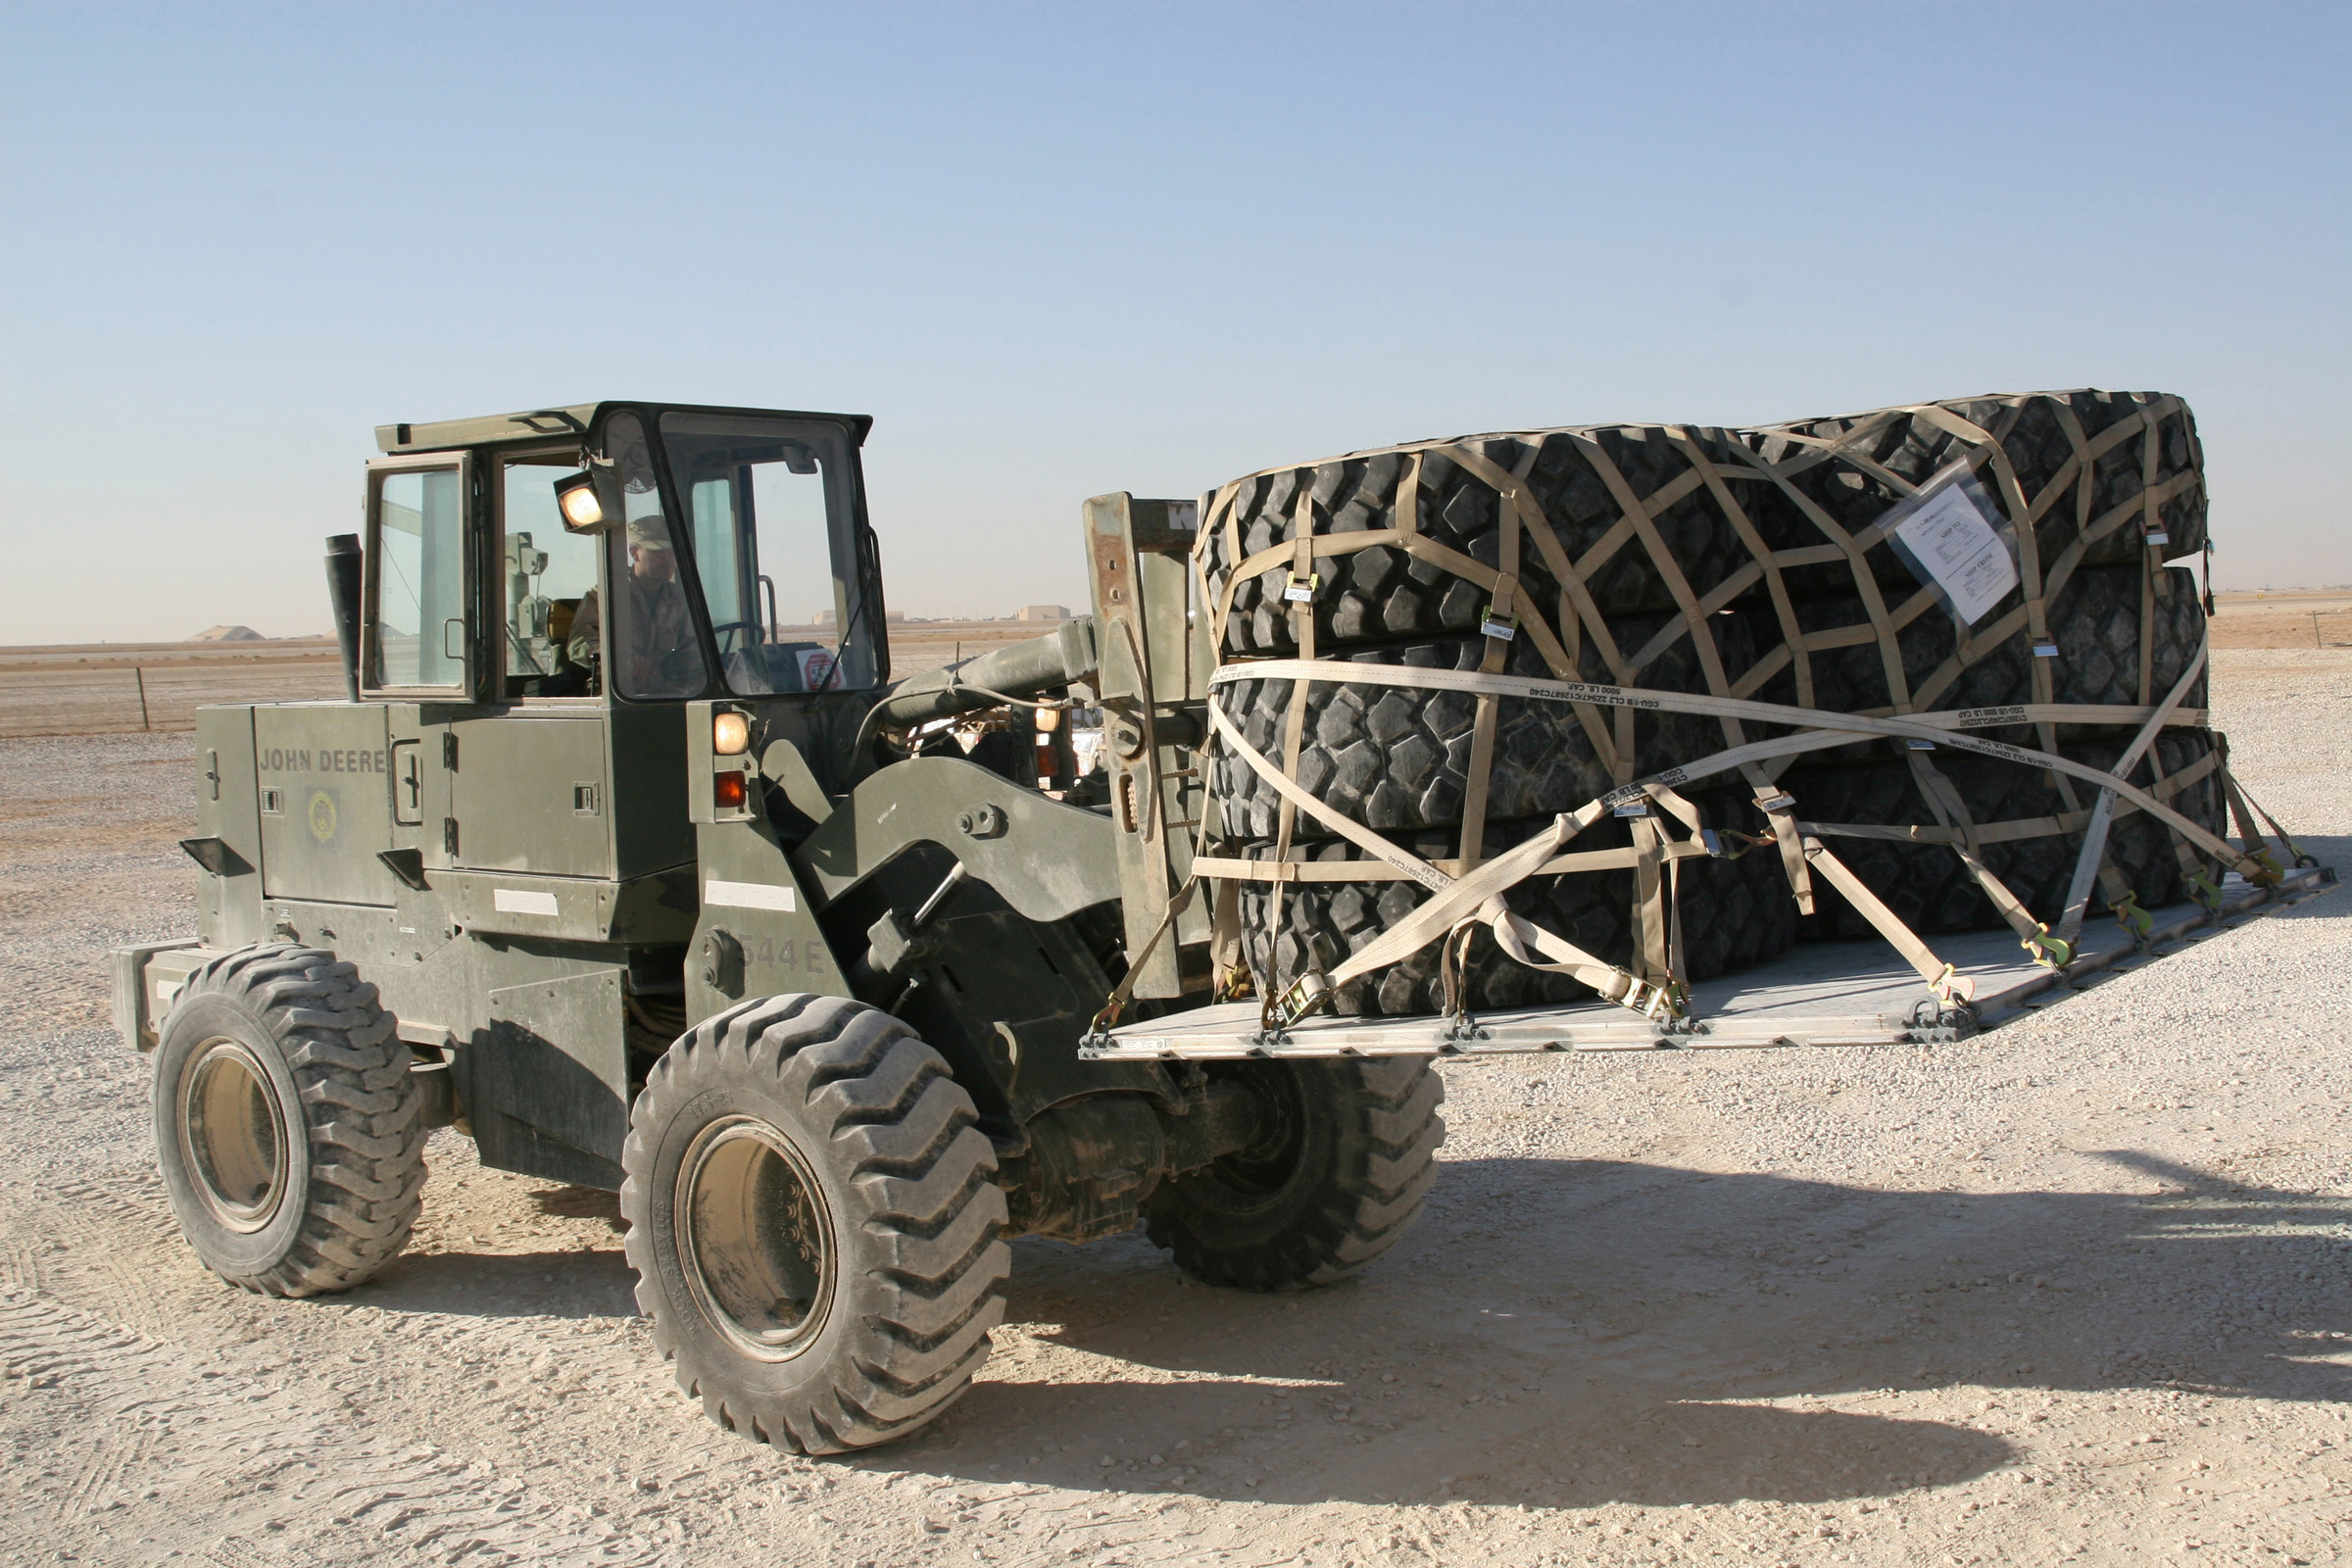 importance of ground guides for trucks for the army Refueling vehicles are used to refuel army aircraft at a fixed or semifixed this system is important since defective wiring can cause sparks ground guides.